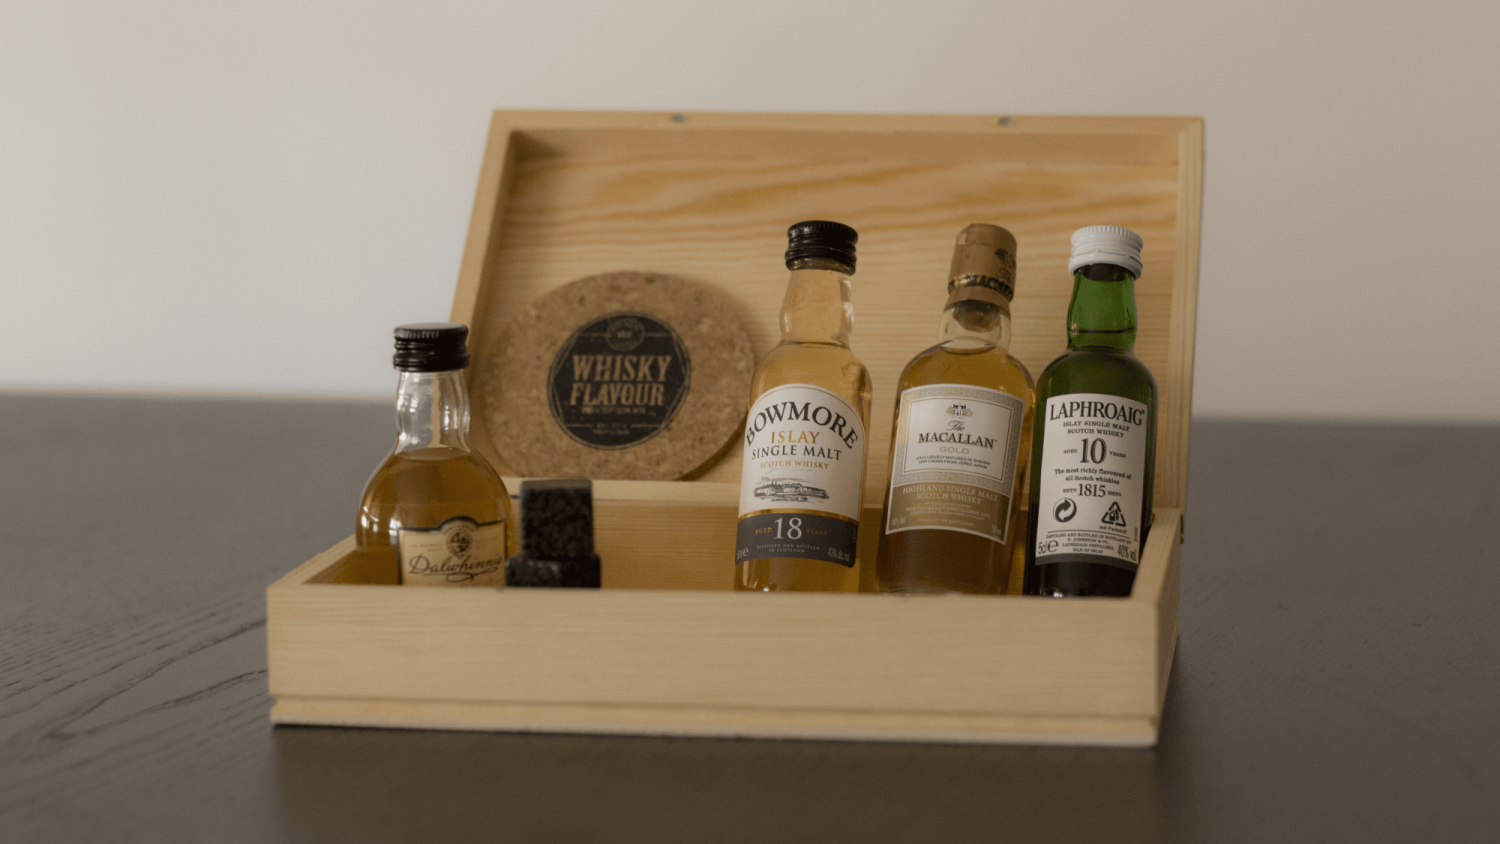 Example of the Whisky Flavour Subscription Box